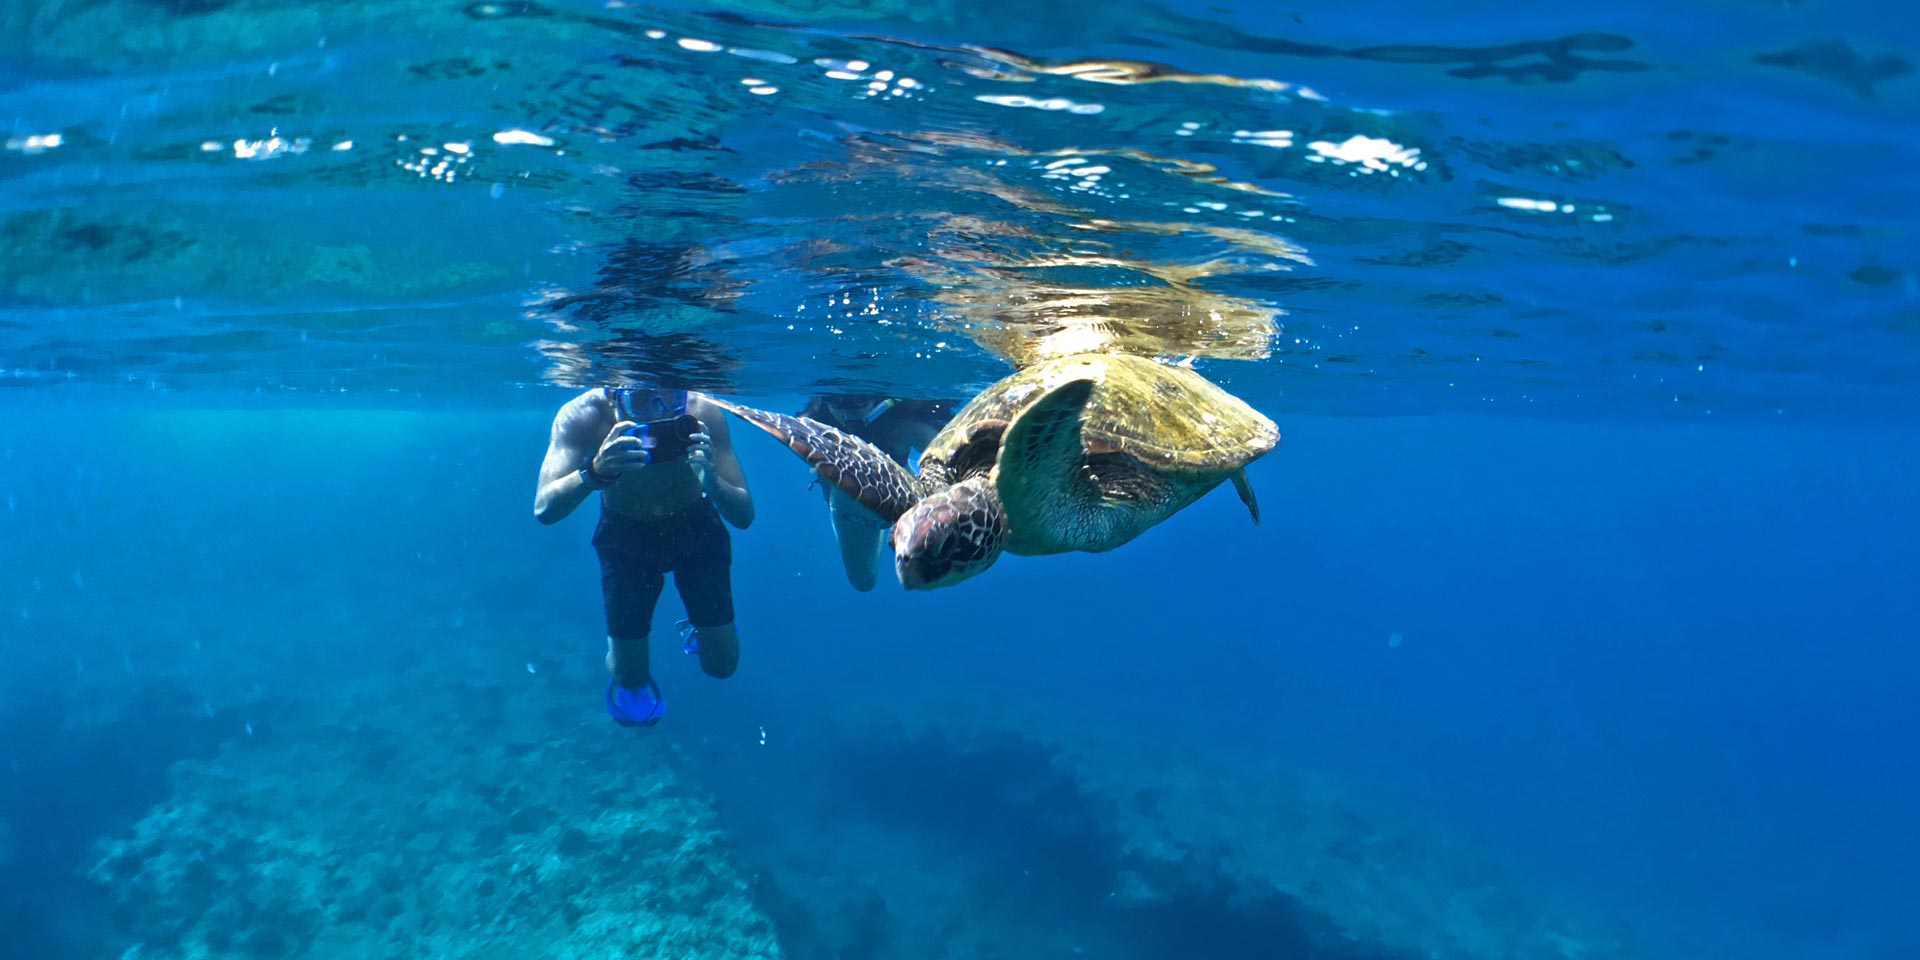 North Shore Oahu snorkeling tour with sea turtles